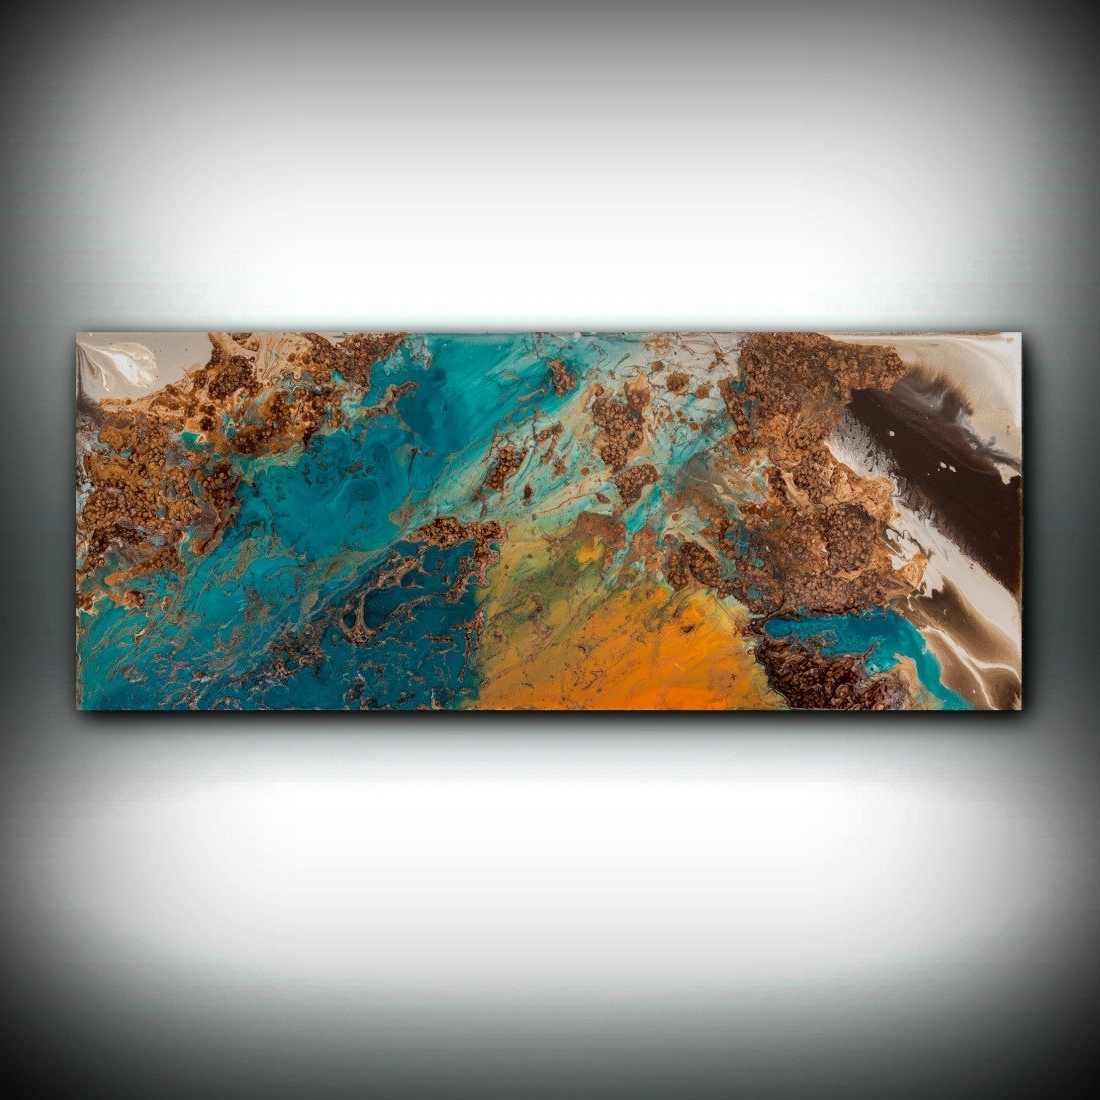 Most Popular Sale Blue And Copper Art, Wall Art Prints Fine Art Prints Abstract With Red And Turquoise Wall Art (View 6 of 15)